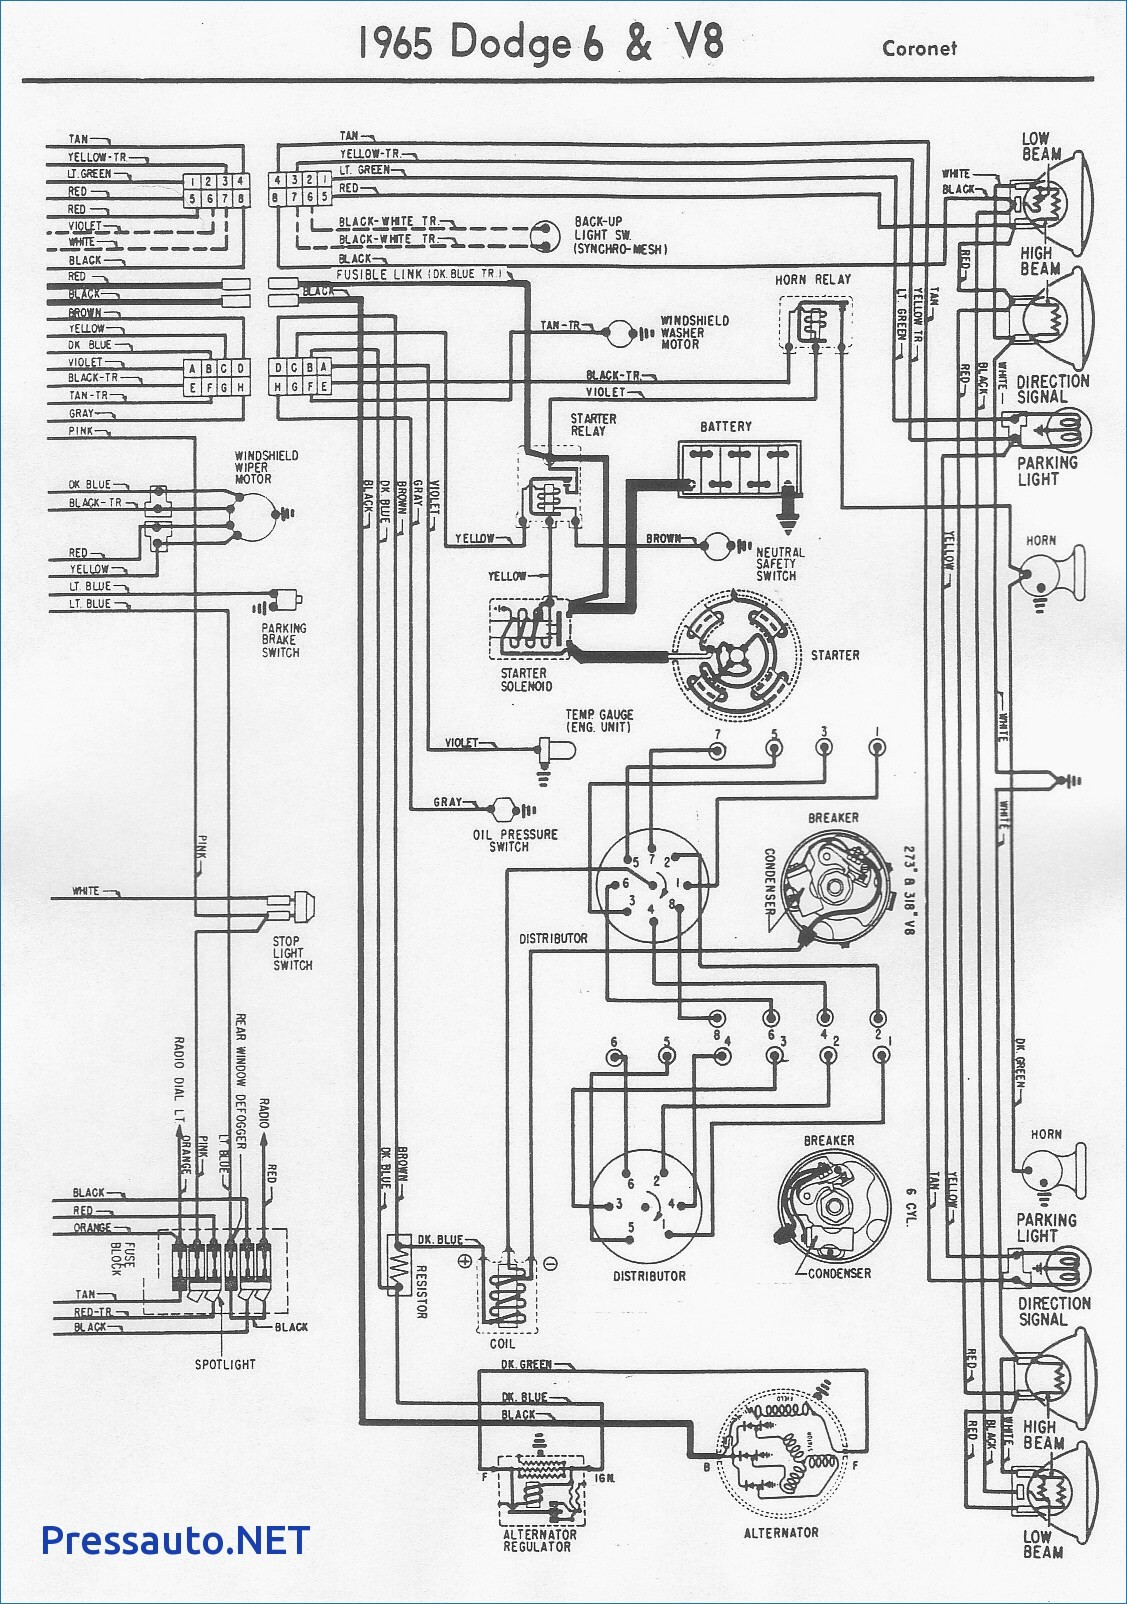 jeep m38a1 wiring diagram schematic